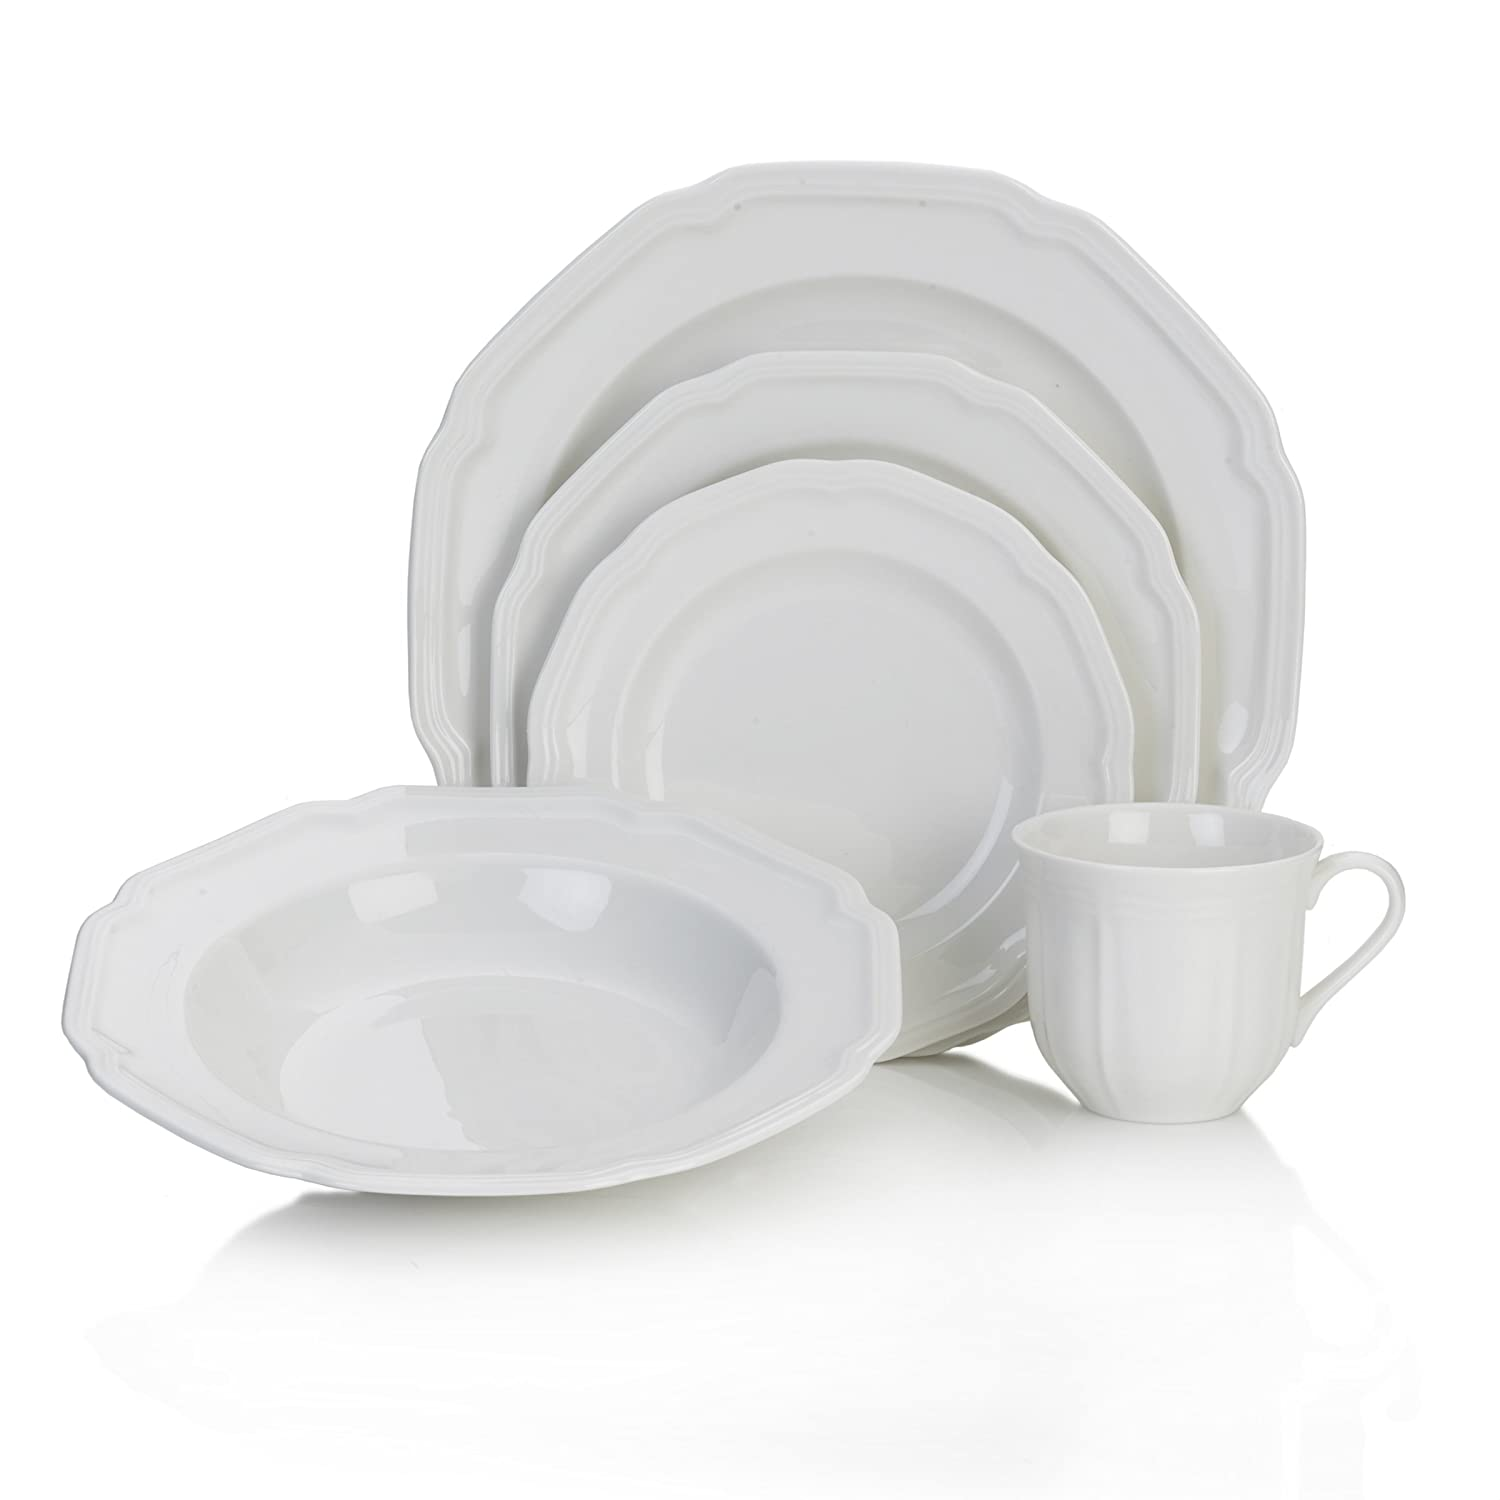 Christmas Tablescape Décor - Antique White 40-Pc Dinnerware Set, Service for 8 - by Mikasa